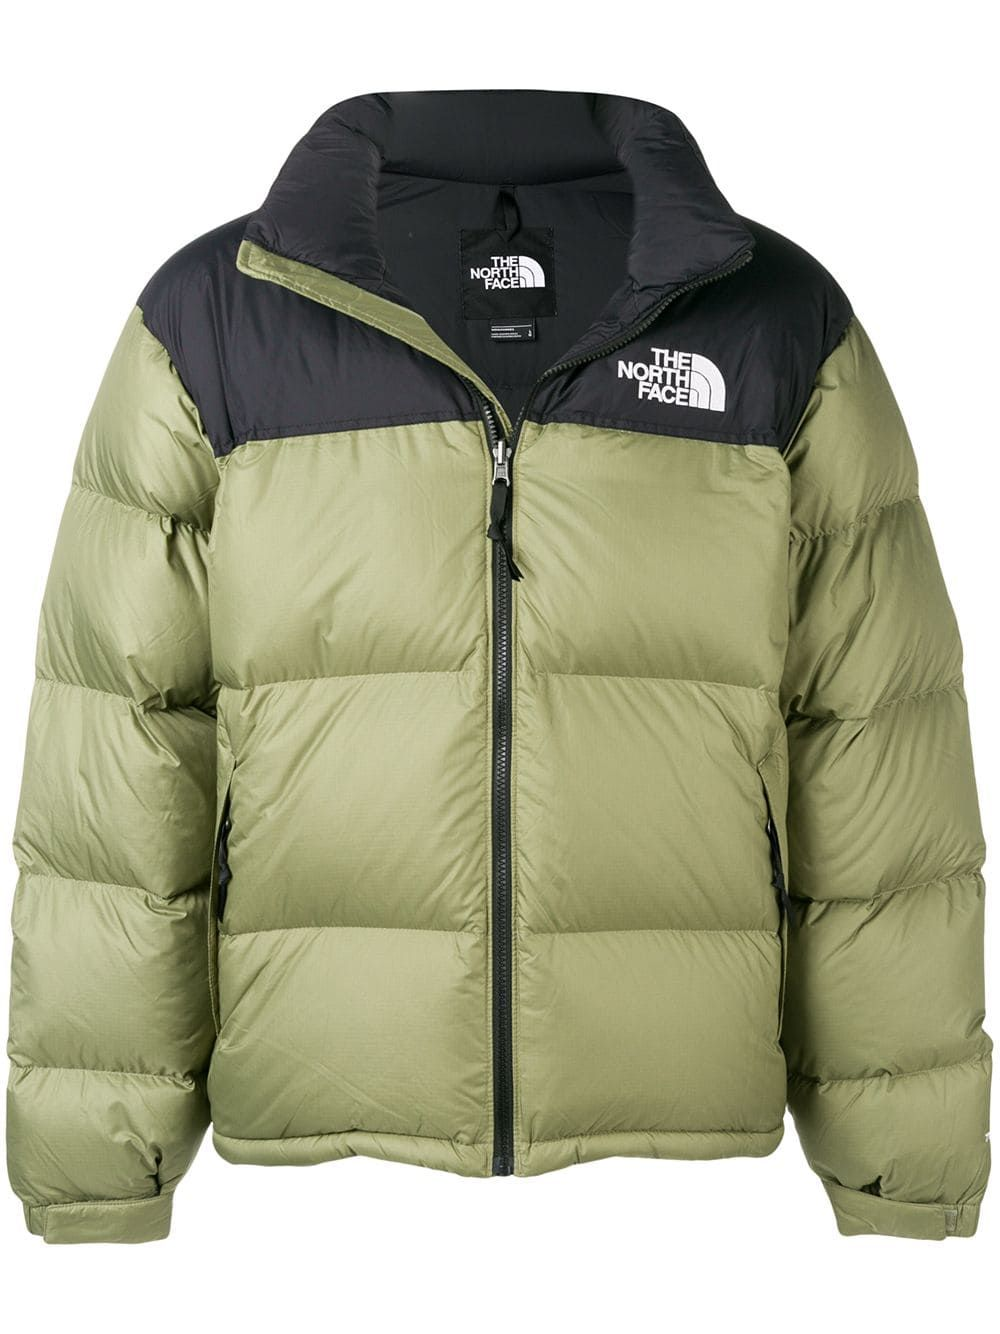 2dde07a61 THE NORTH FACE THE NORTH FACE FEATHER DOWN JACKET - GREEN ...